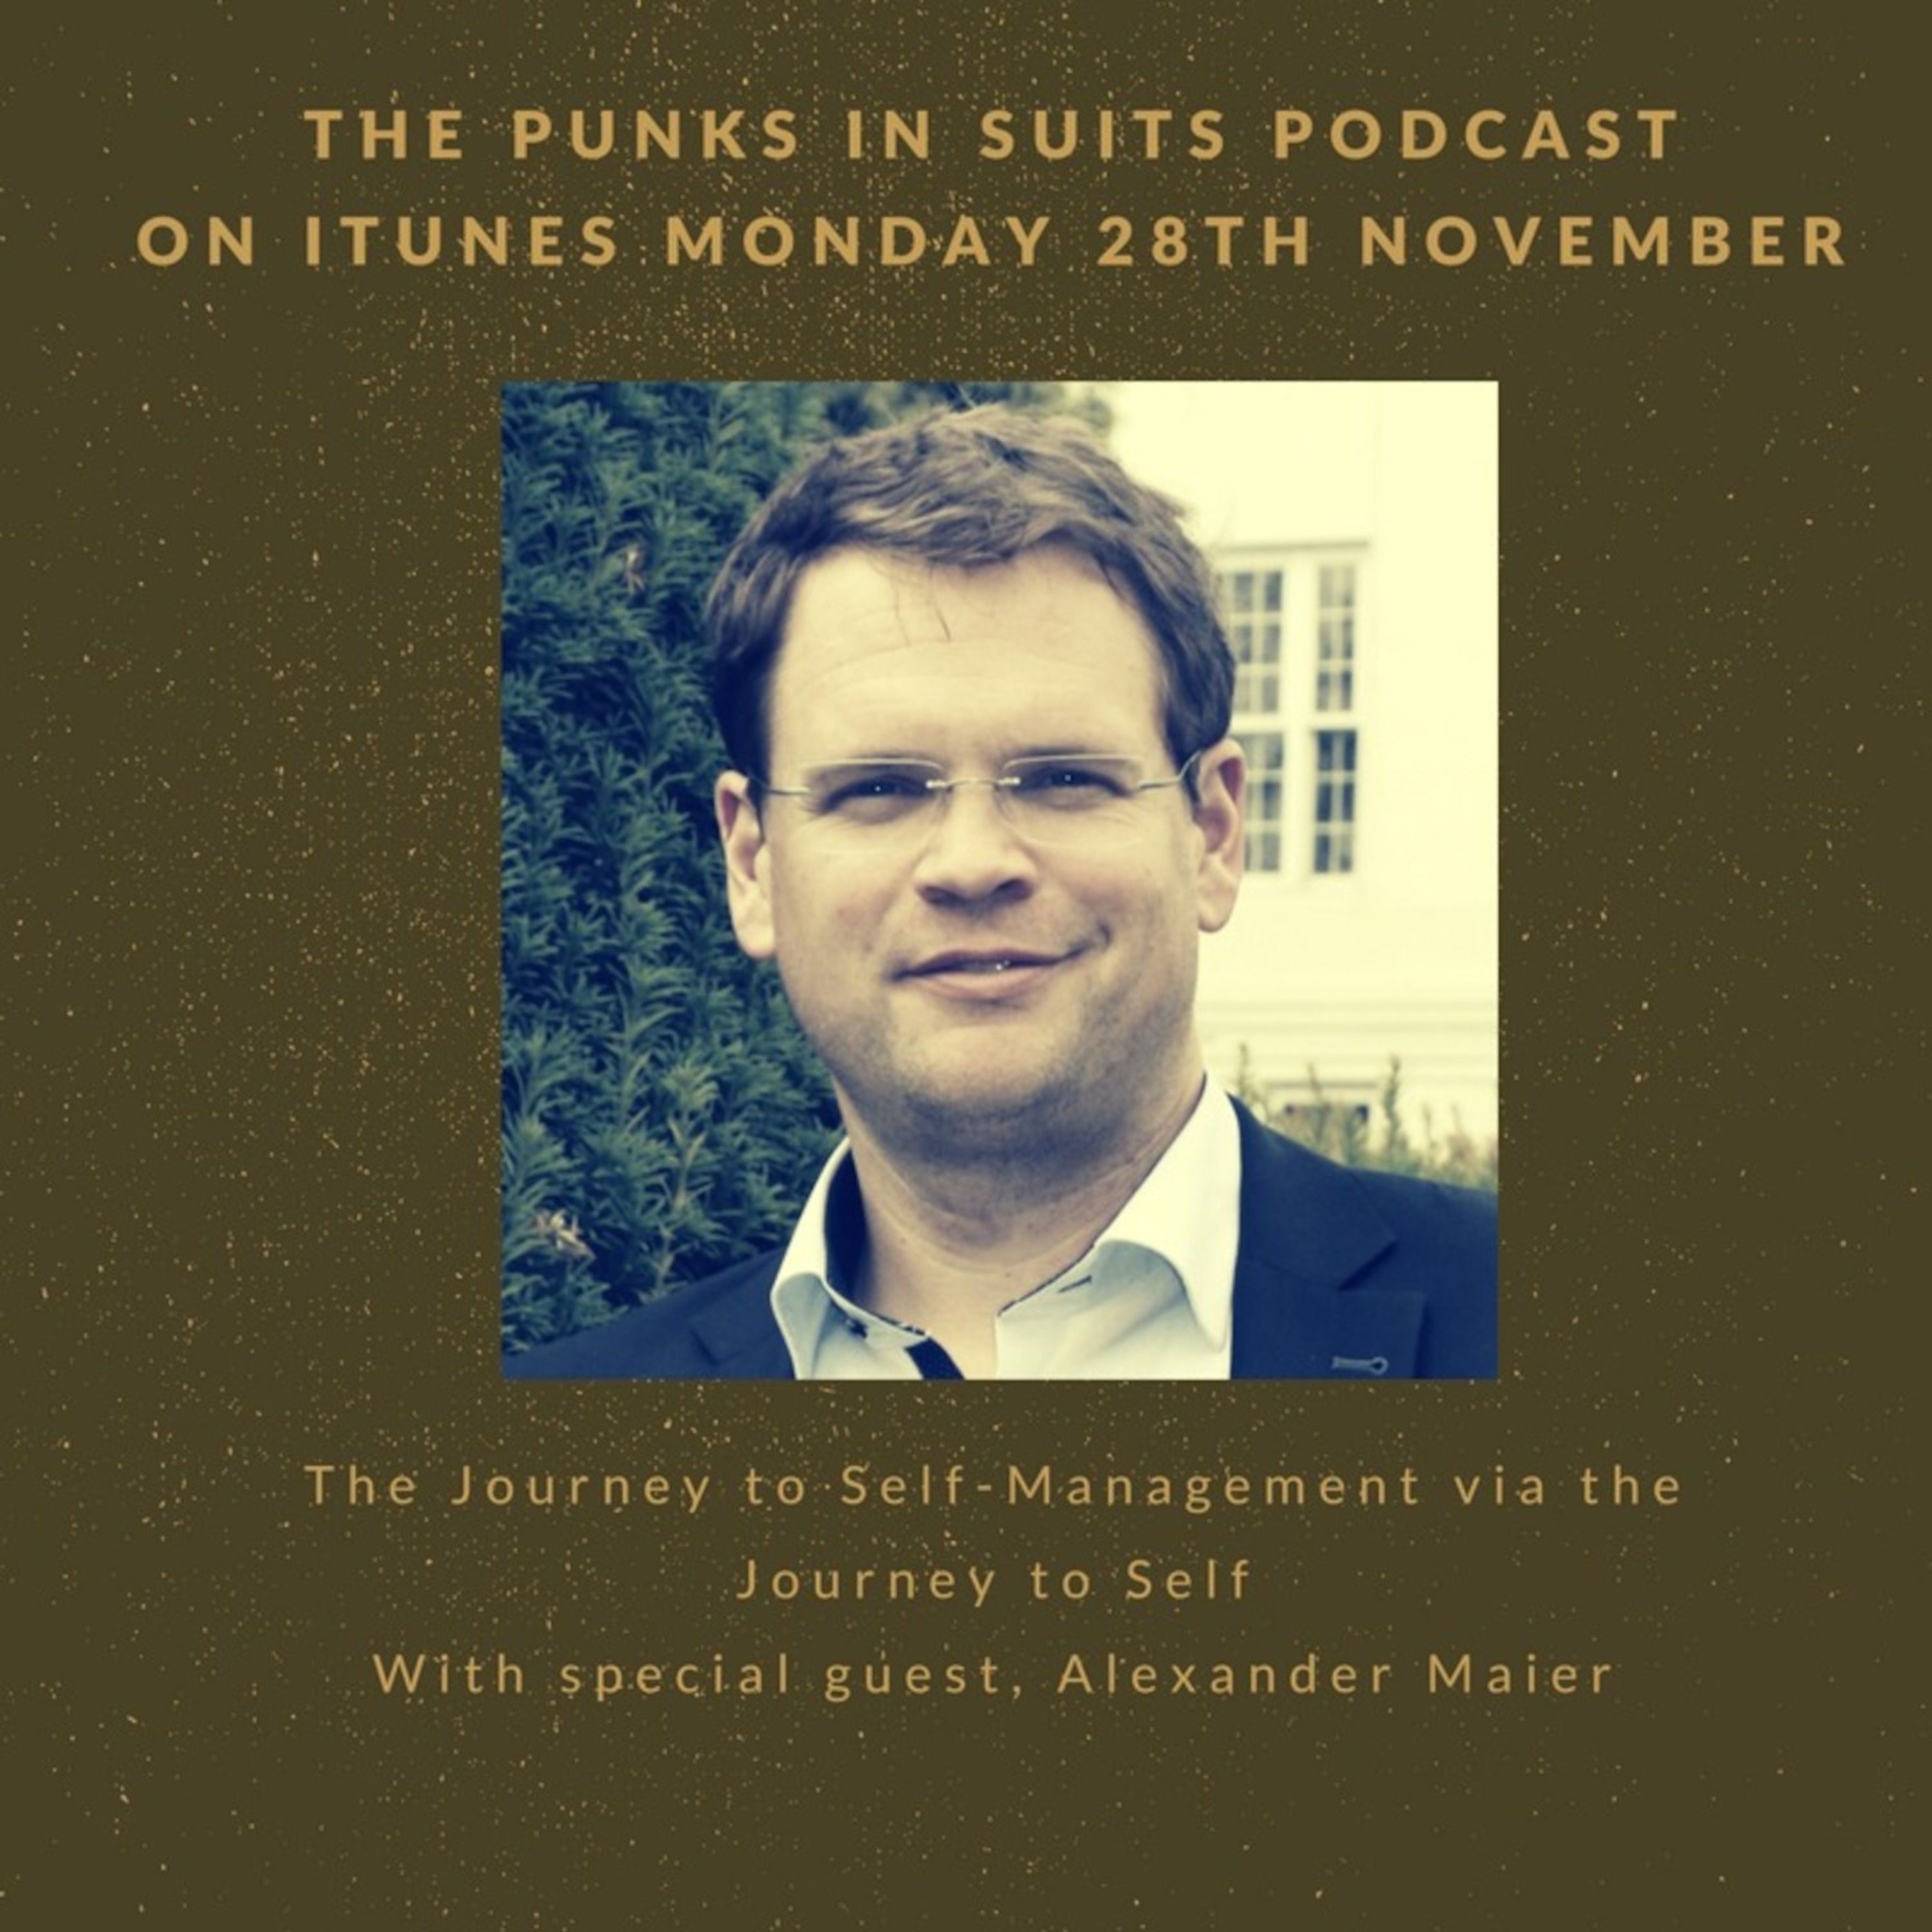 Episode 8: The Journey to Self-Management via the Journey to Self